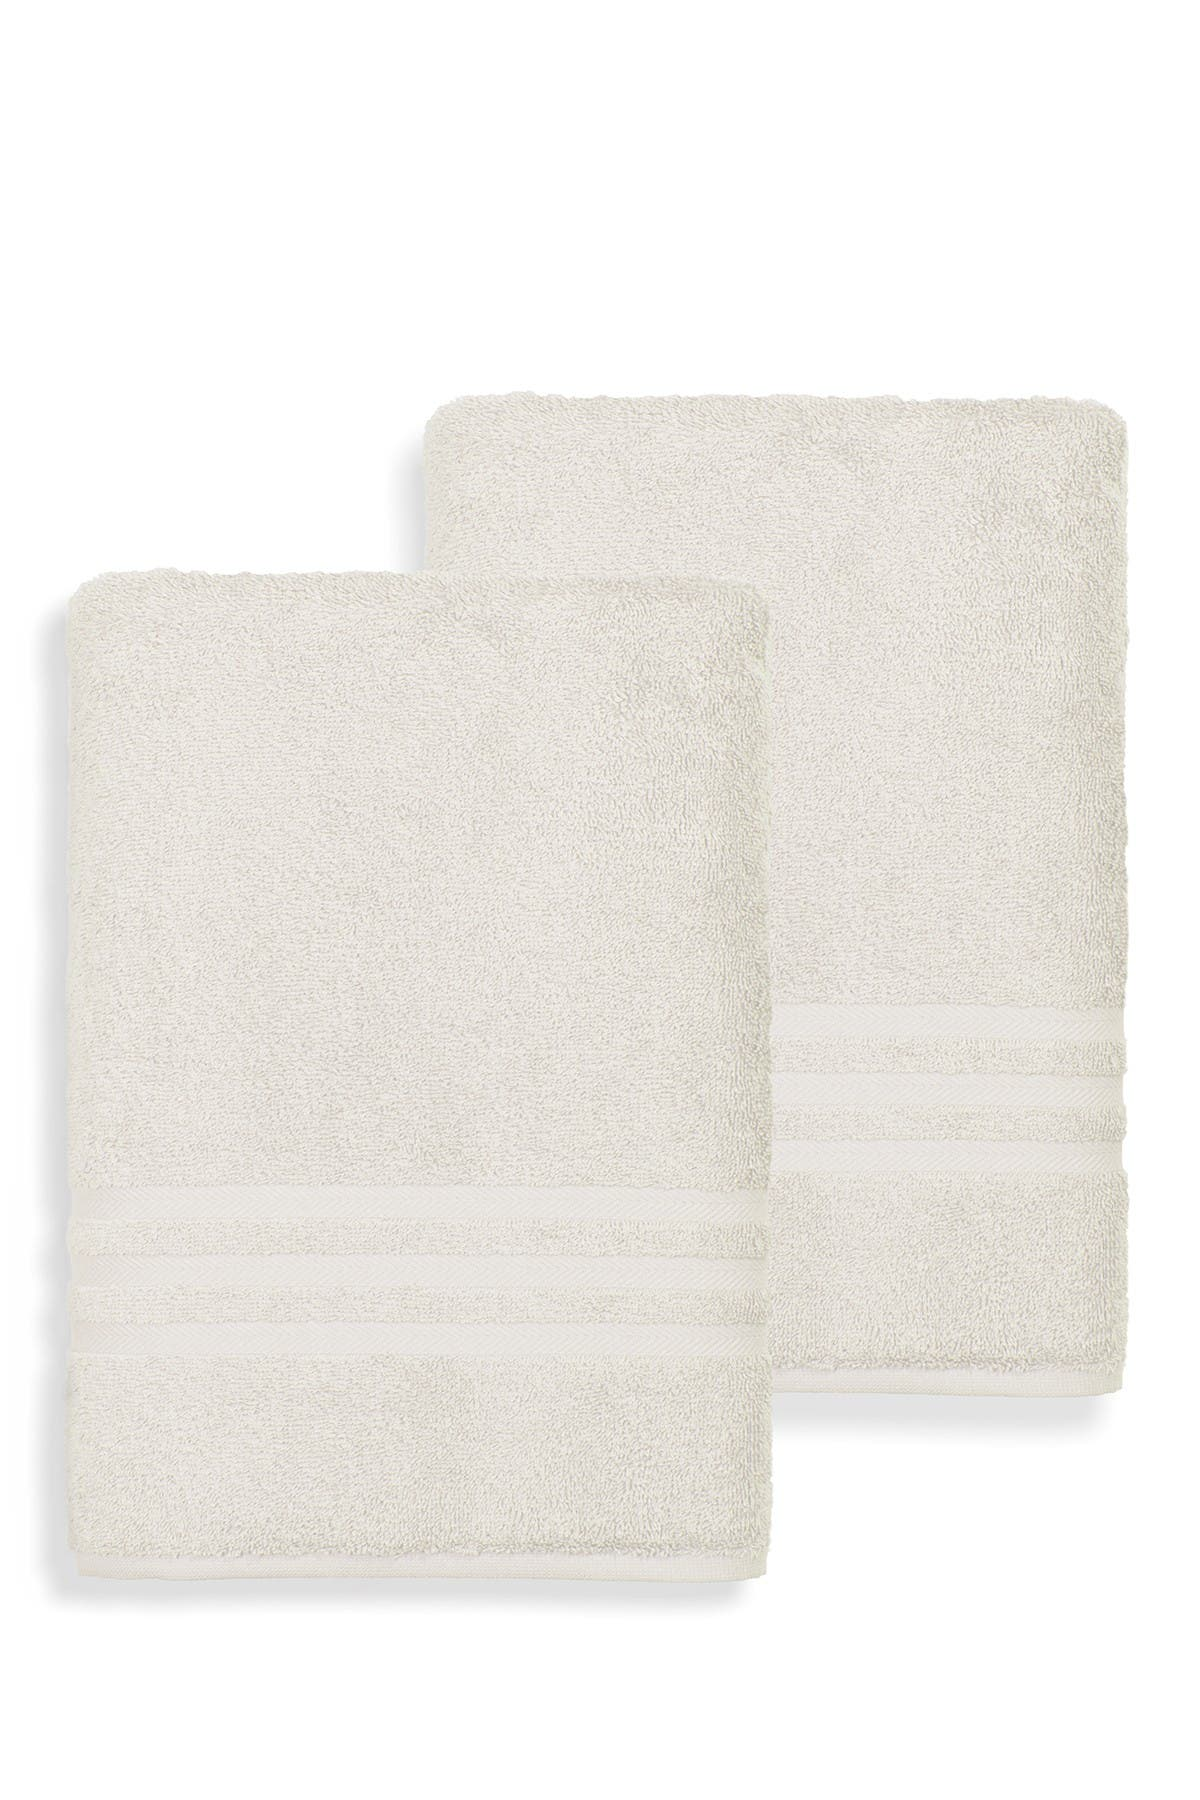 Image of LINUM HOME Denzi Bath Sheet - Set of 2 - Cream